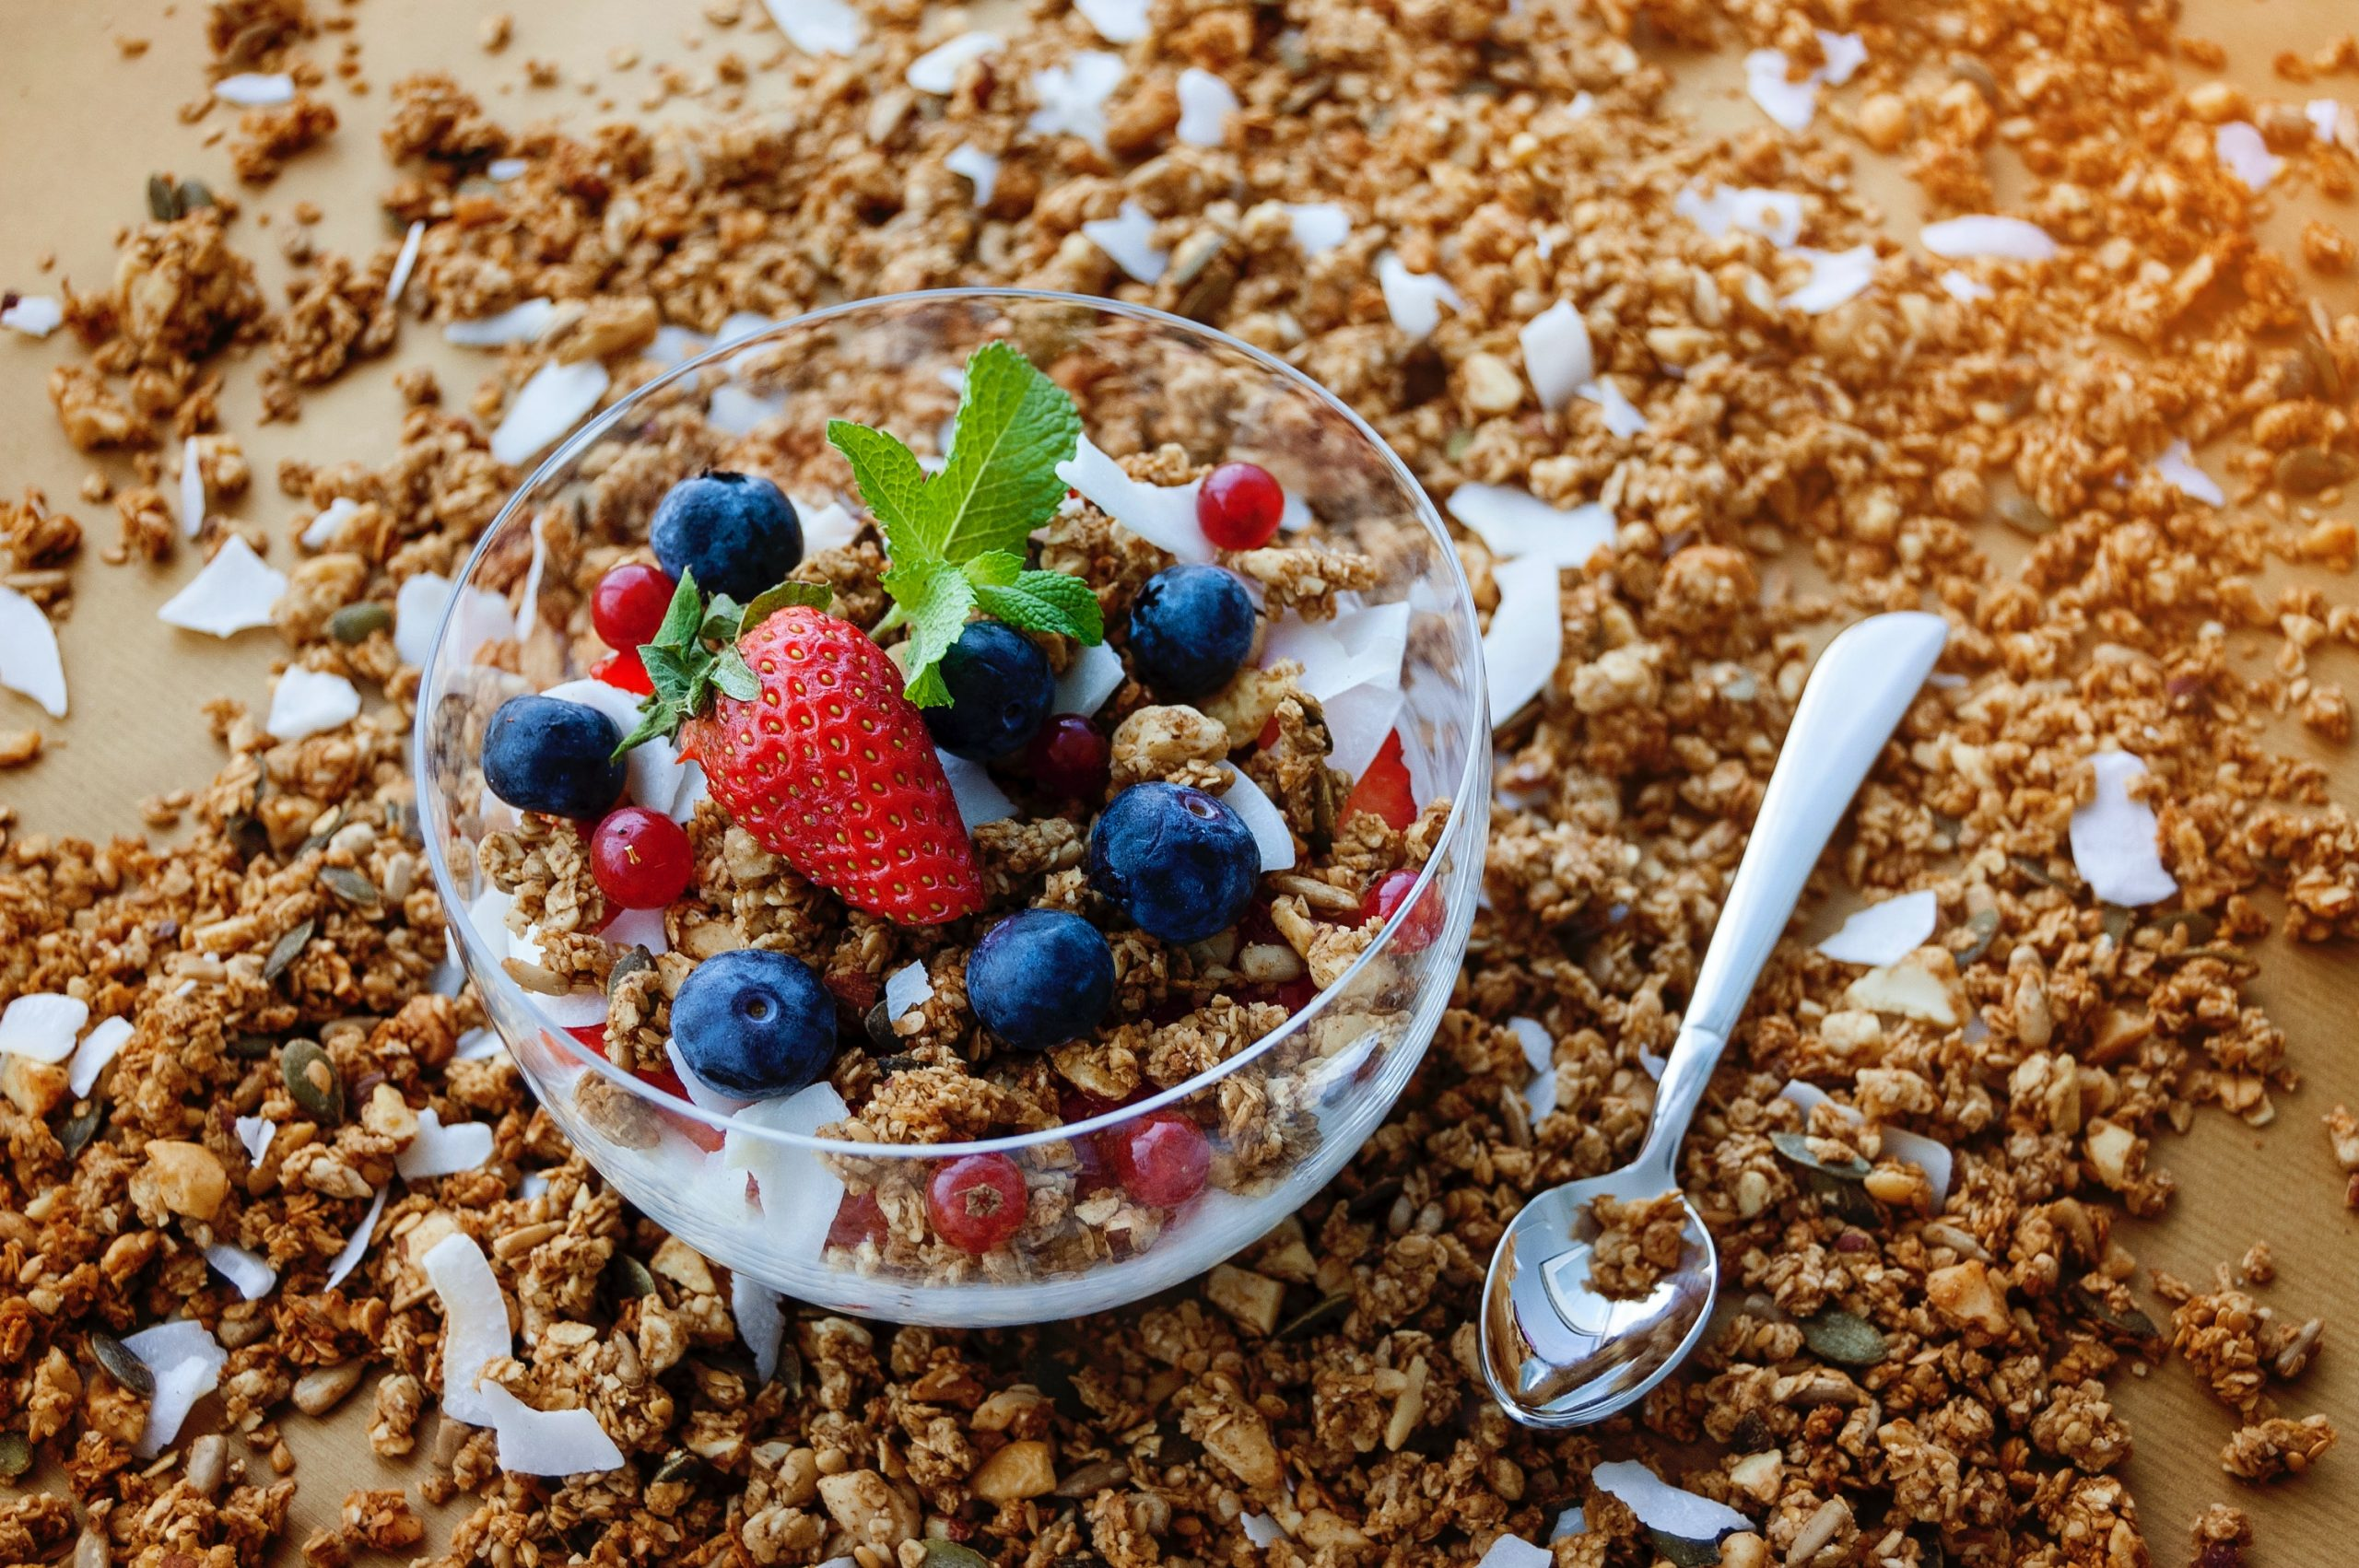 A bowl of hemp granola garnished with fruit